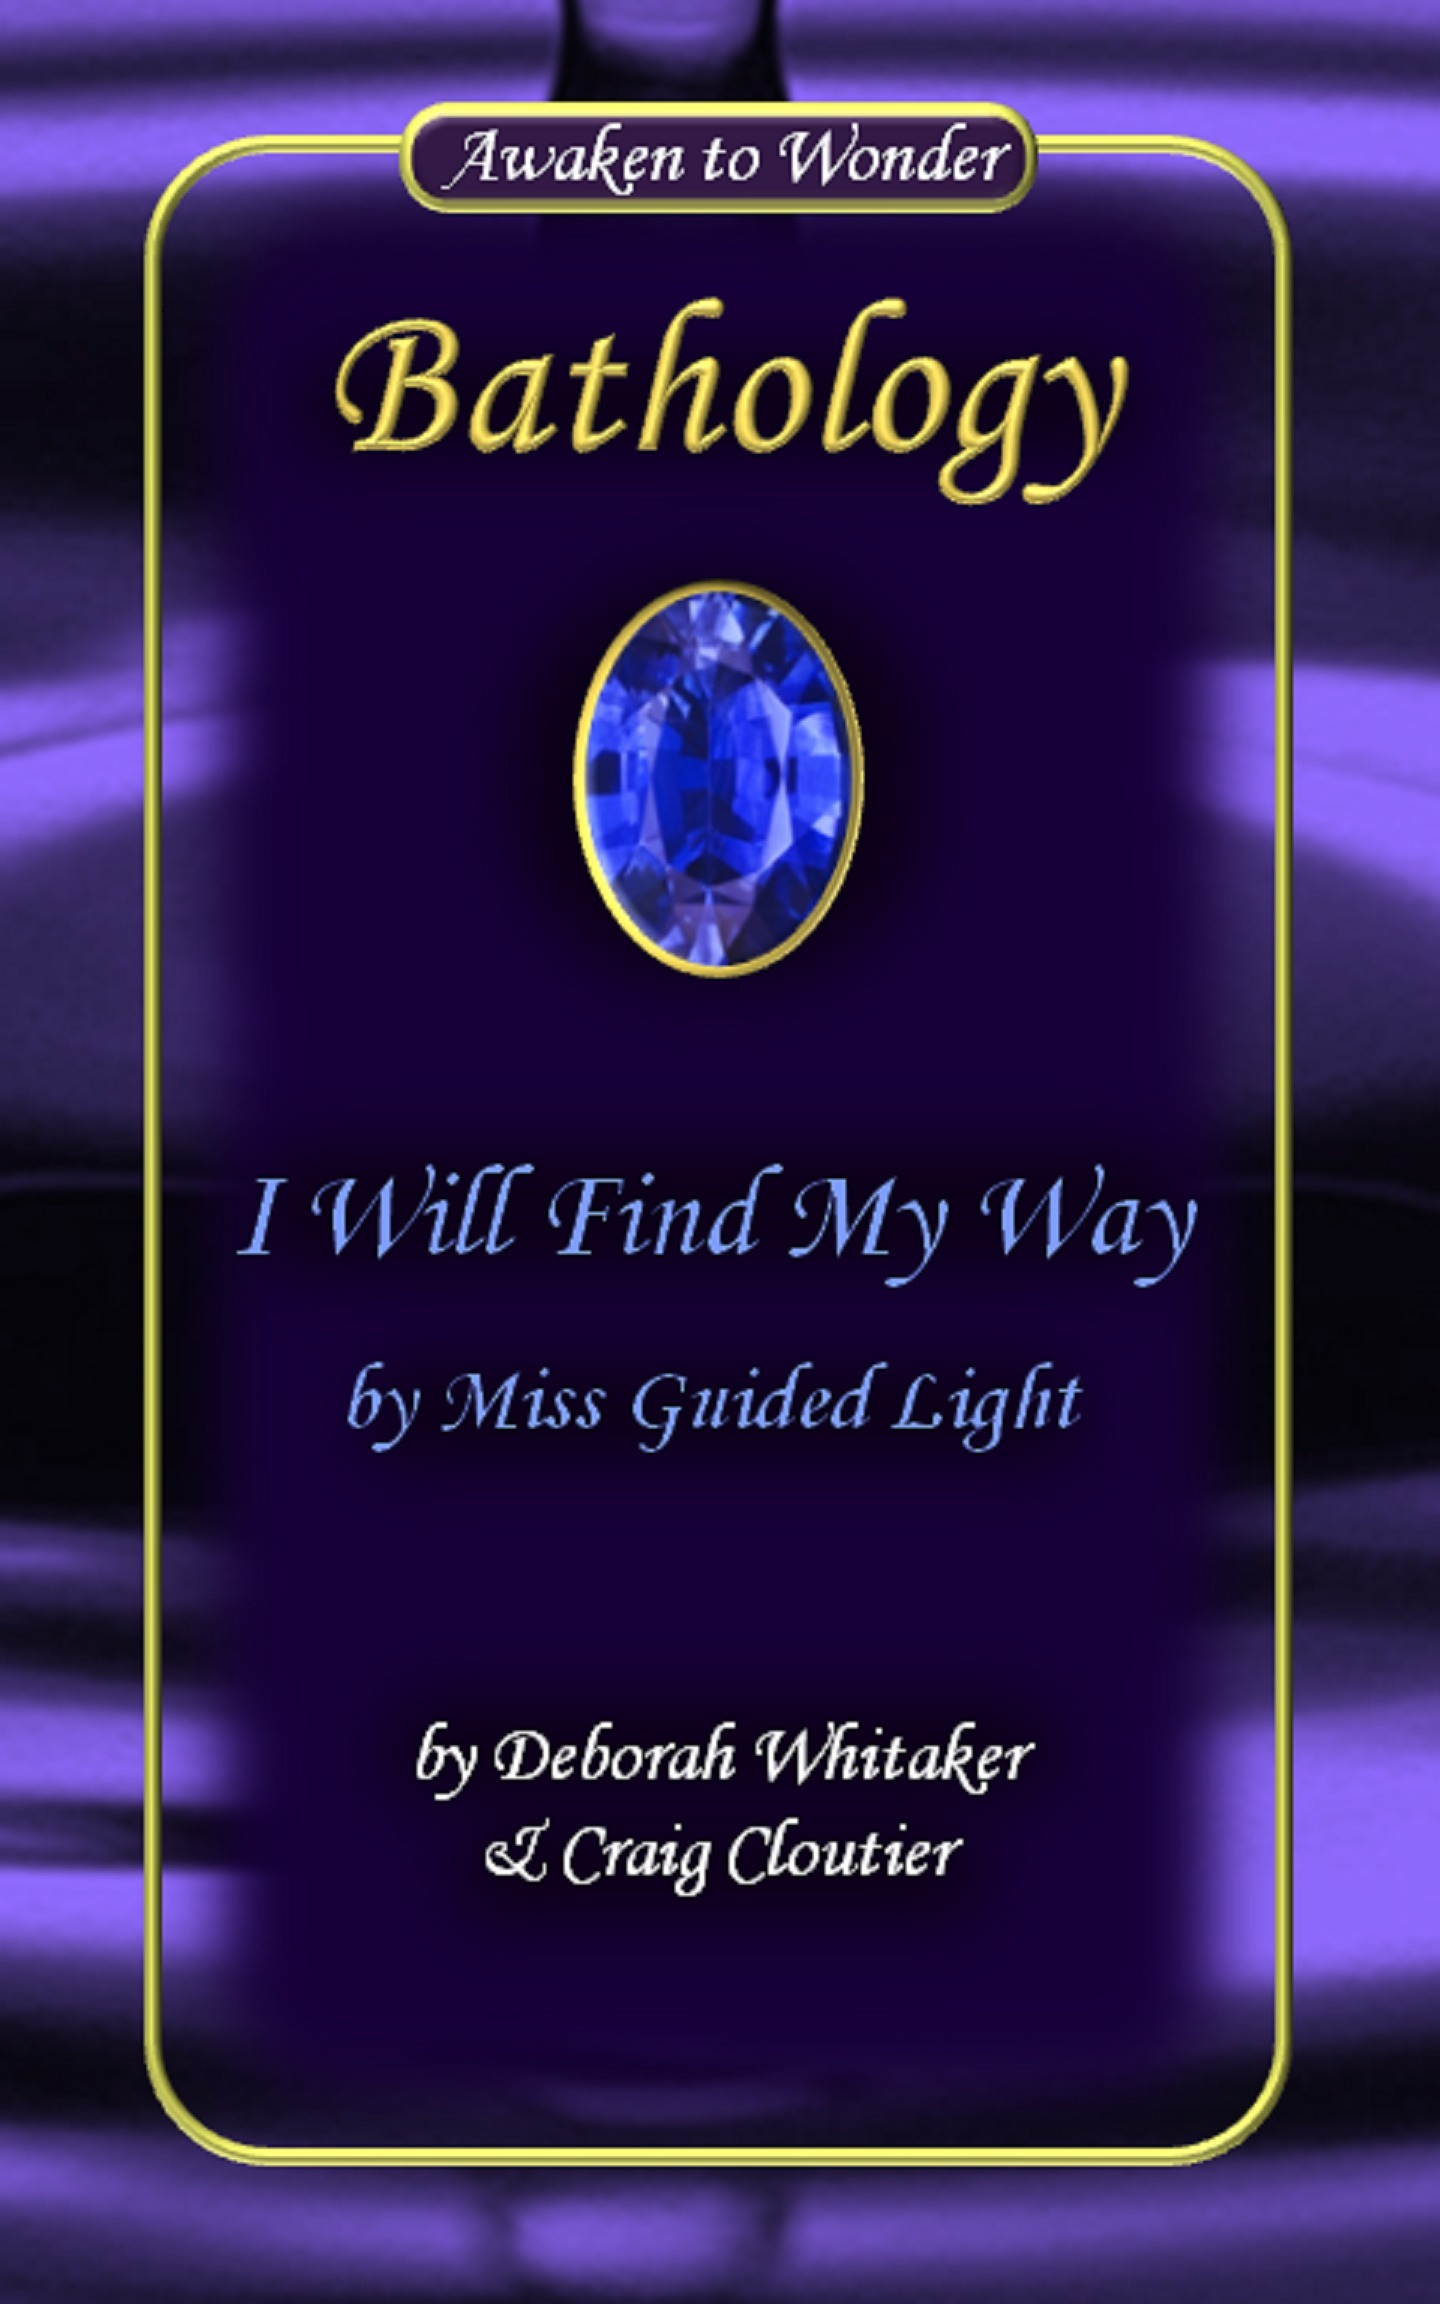 I Will Find My Way Miss Guided Light Bathology Series by Deborah Whitaker